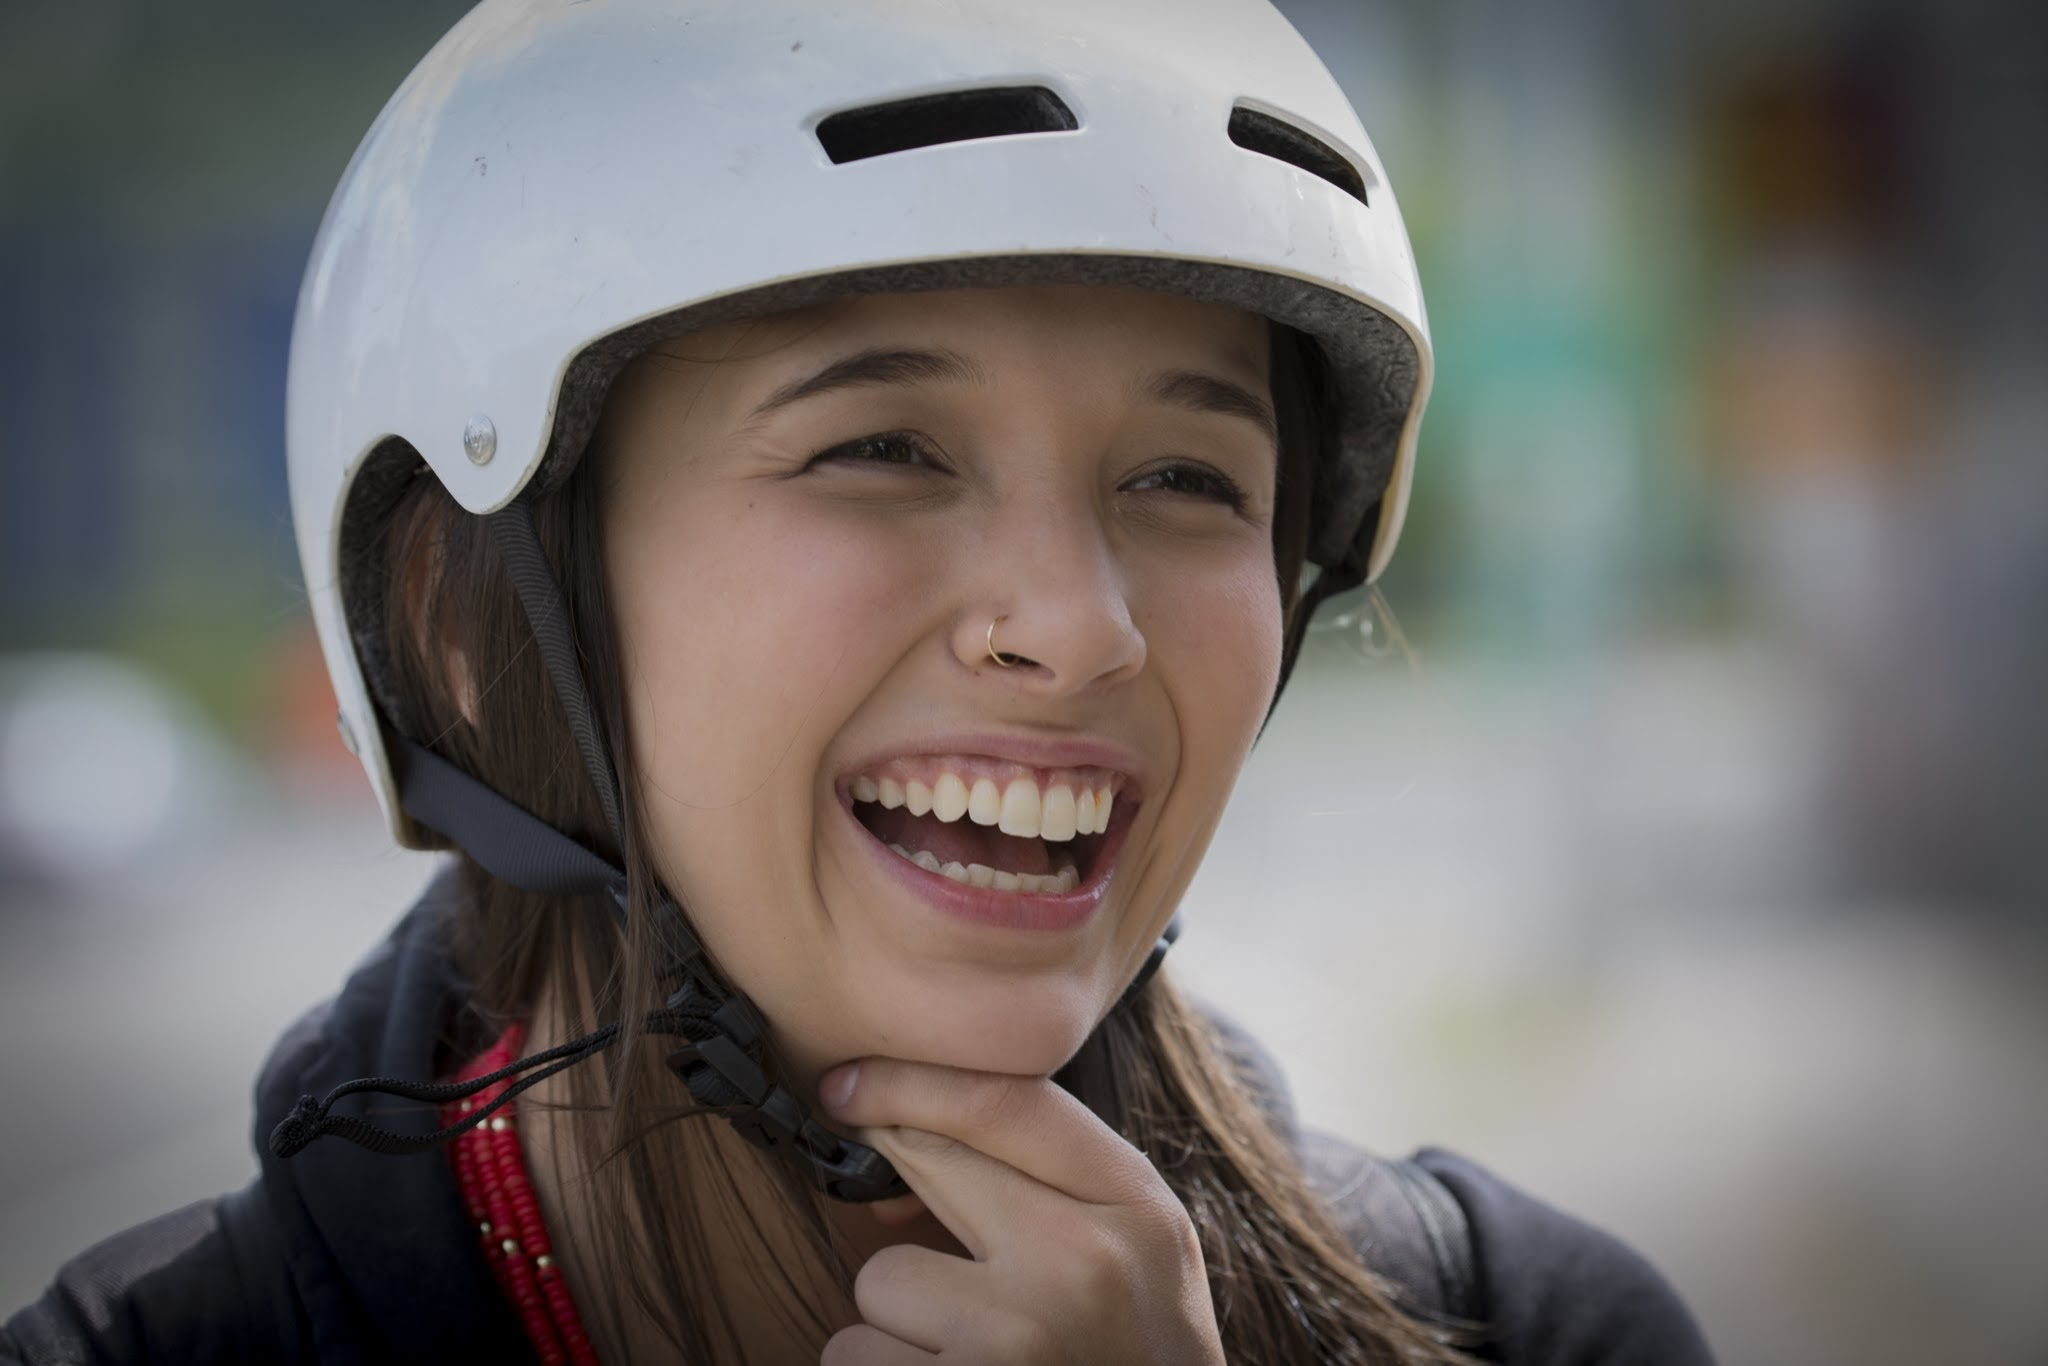 Woman smiling with white helmet